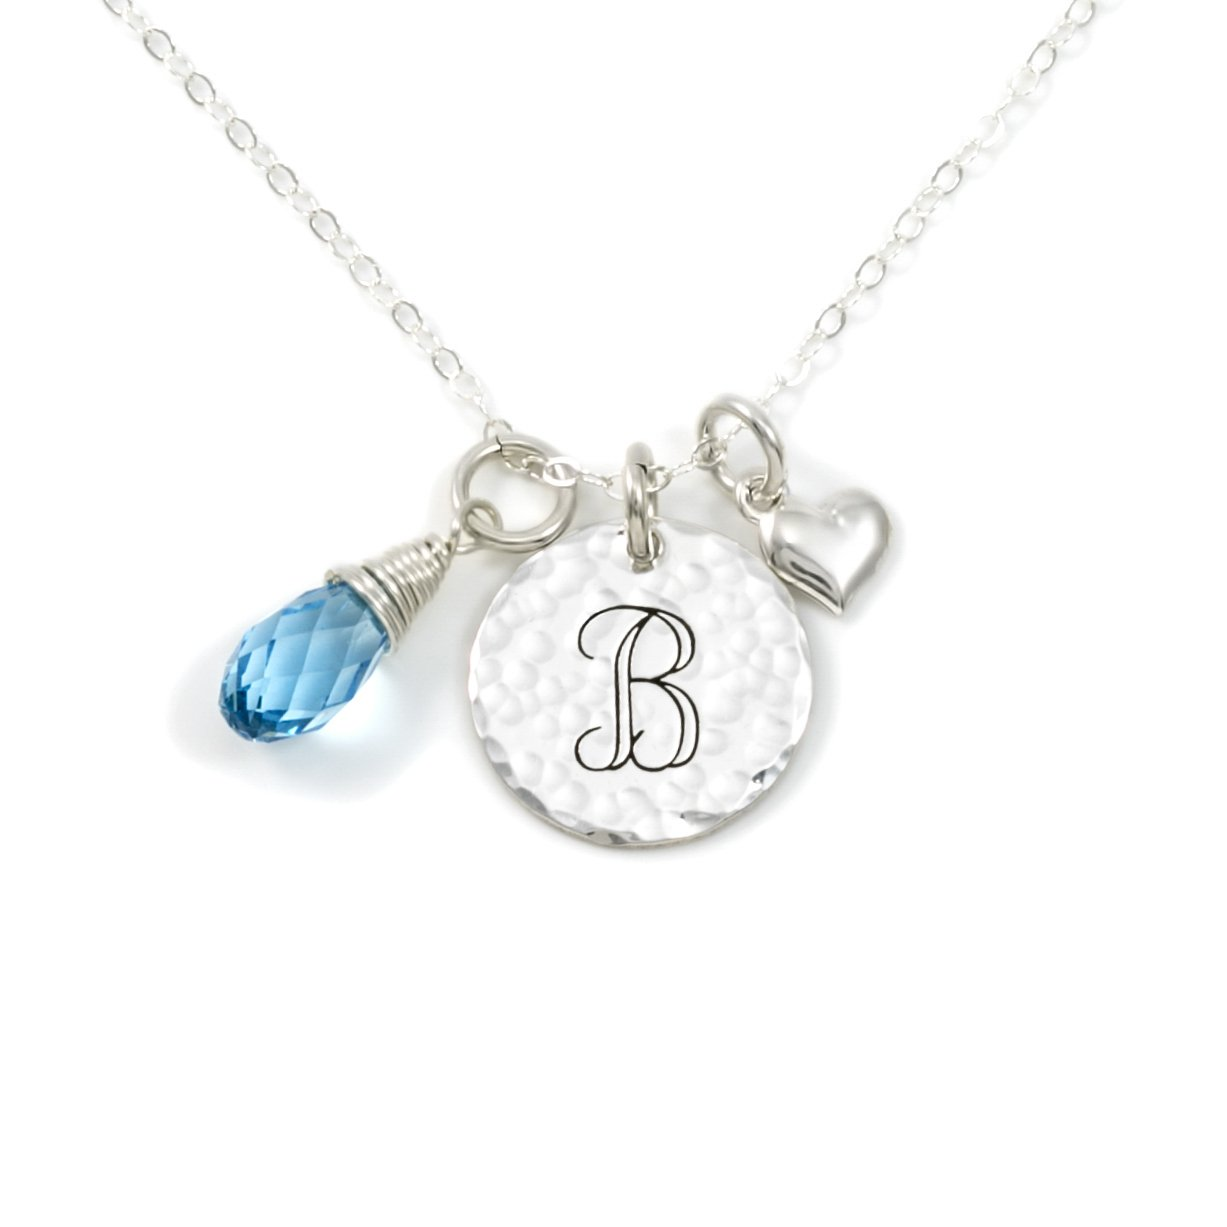 AJ's Collection Keep It Simple- Personalized Sterling Silver Initial Monogram and Heart Charm Necklace with Swarovski Birthstone Briolette. Chic Gifts for Her, Wife, Girlfriend, and More